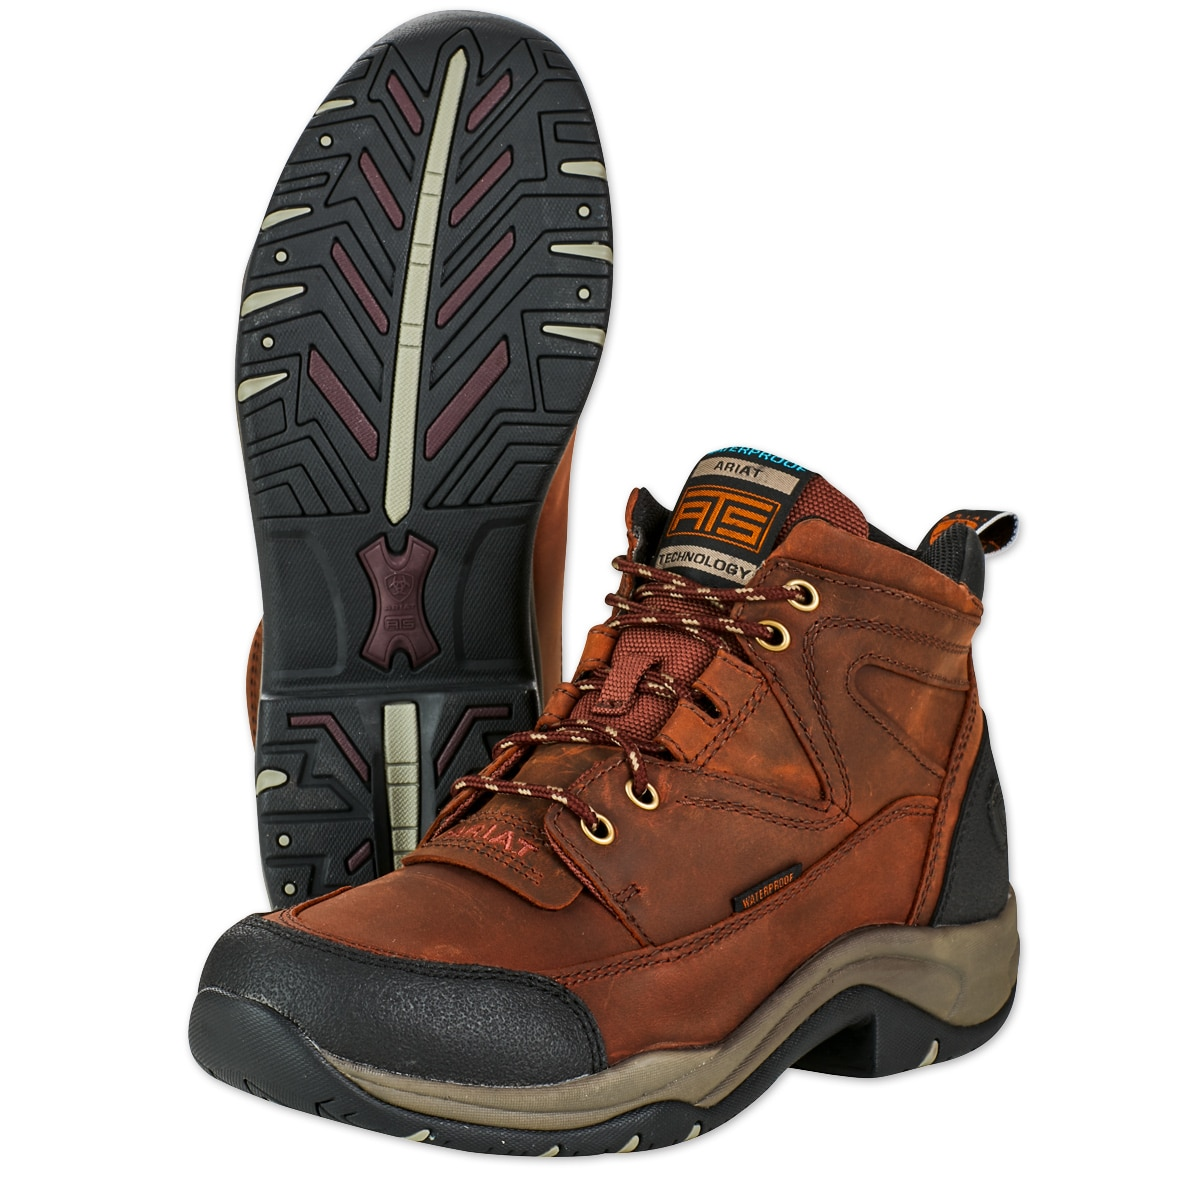 3c935b4e06 Ariat® Terrain Waterproof